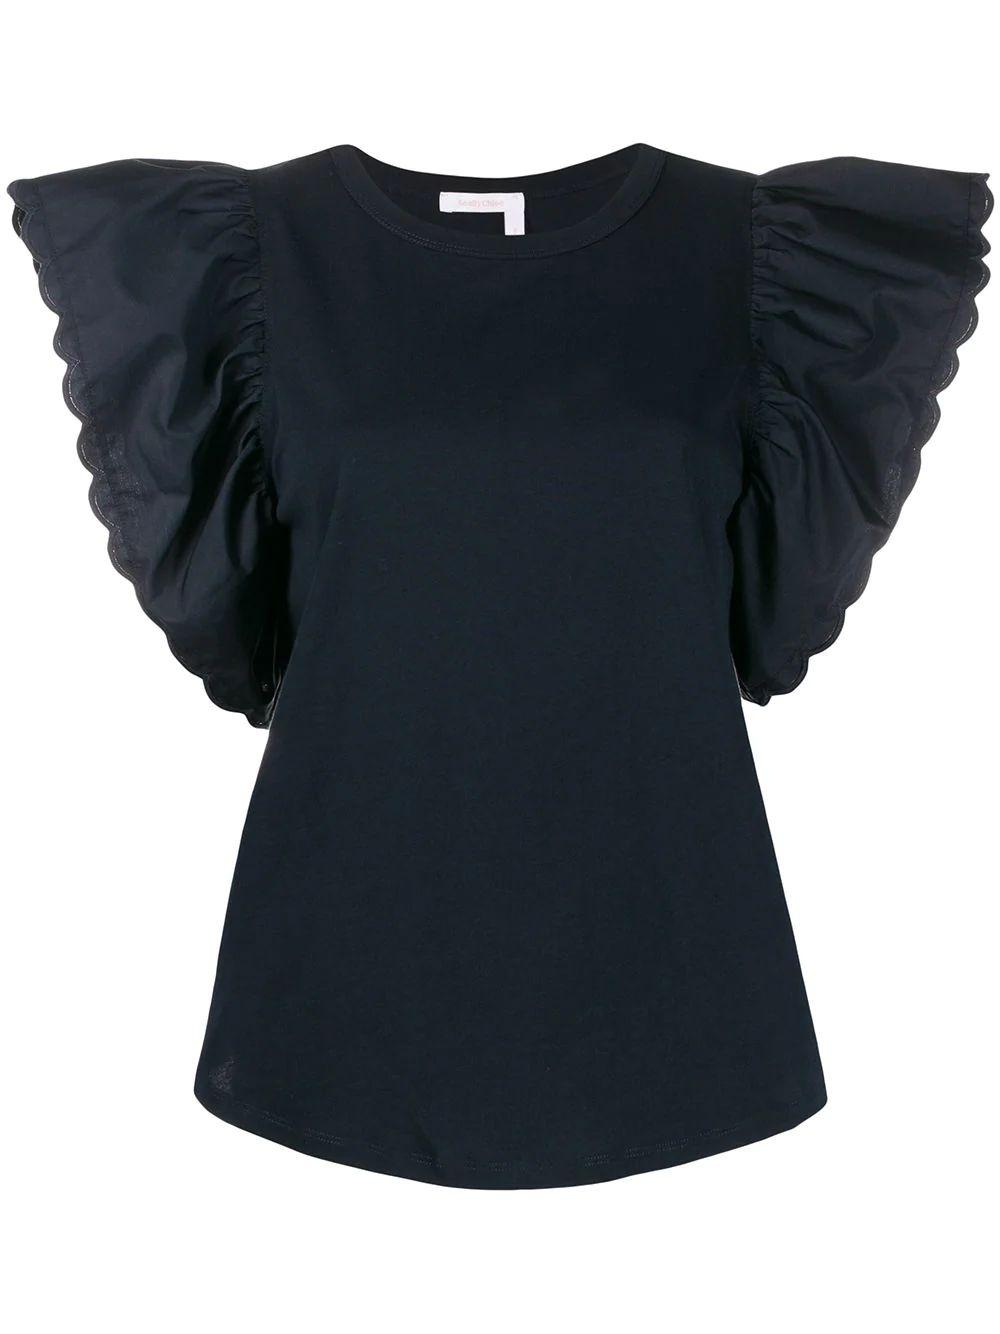 Tee With Oversized Ruffle Sleeve